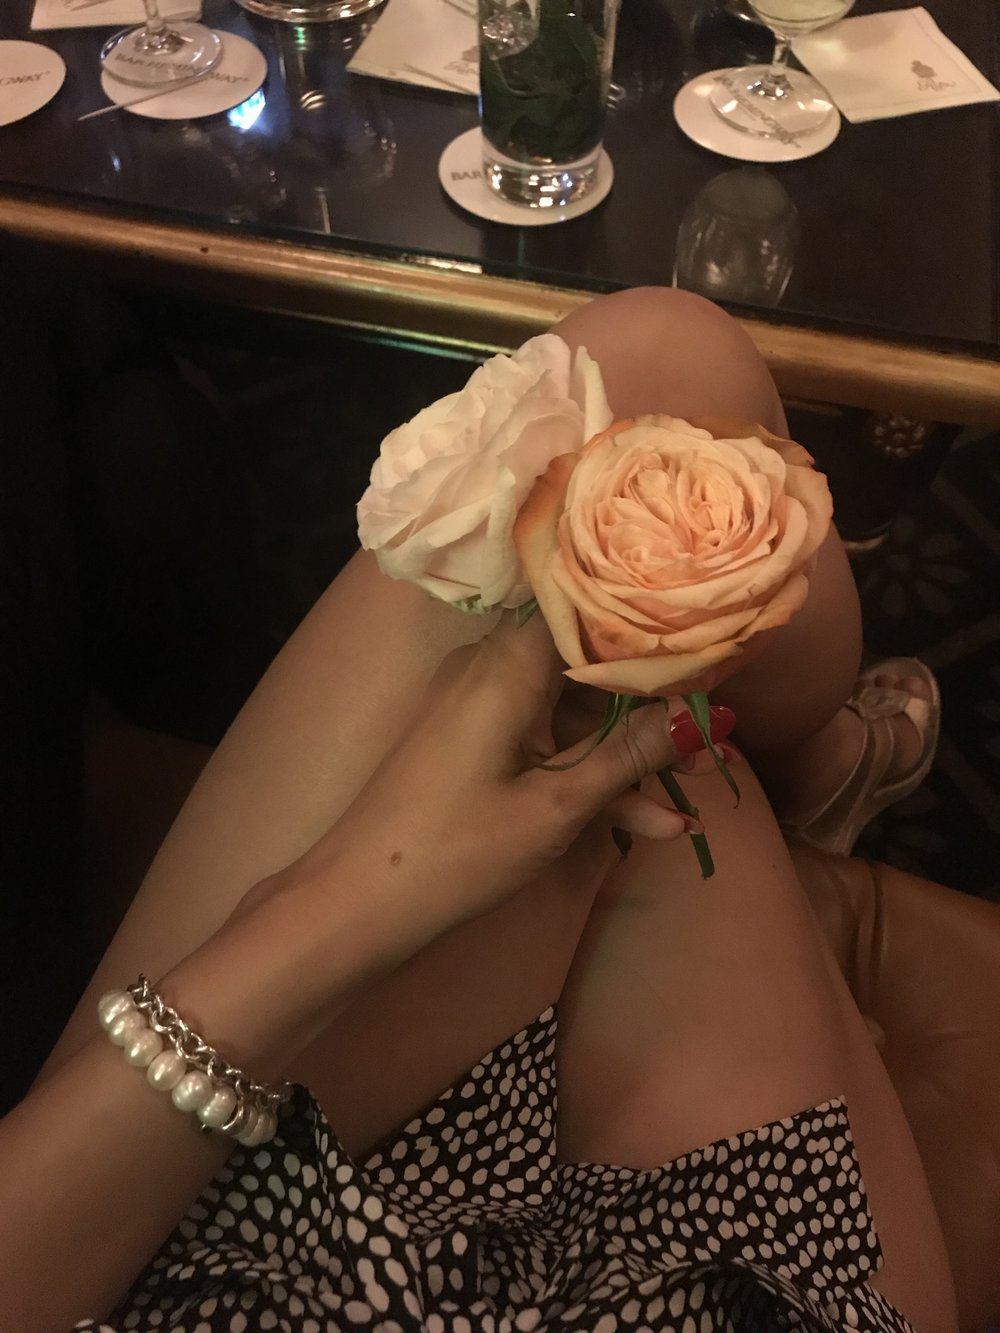 Bonus: every cocktail comes with a beautiful rose! Cant think of a better way to collect a bouquet :)